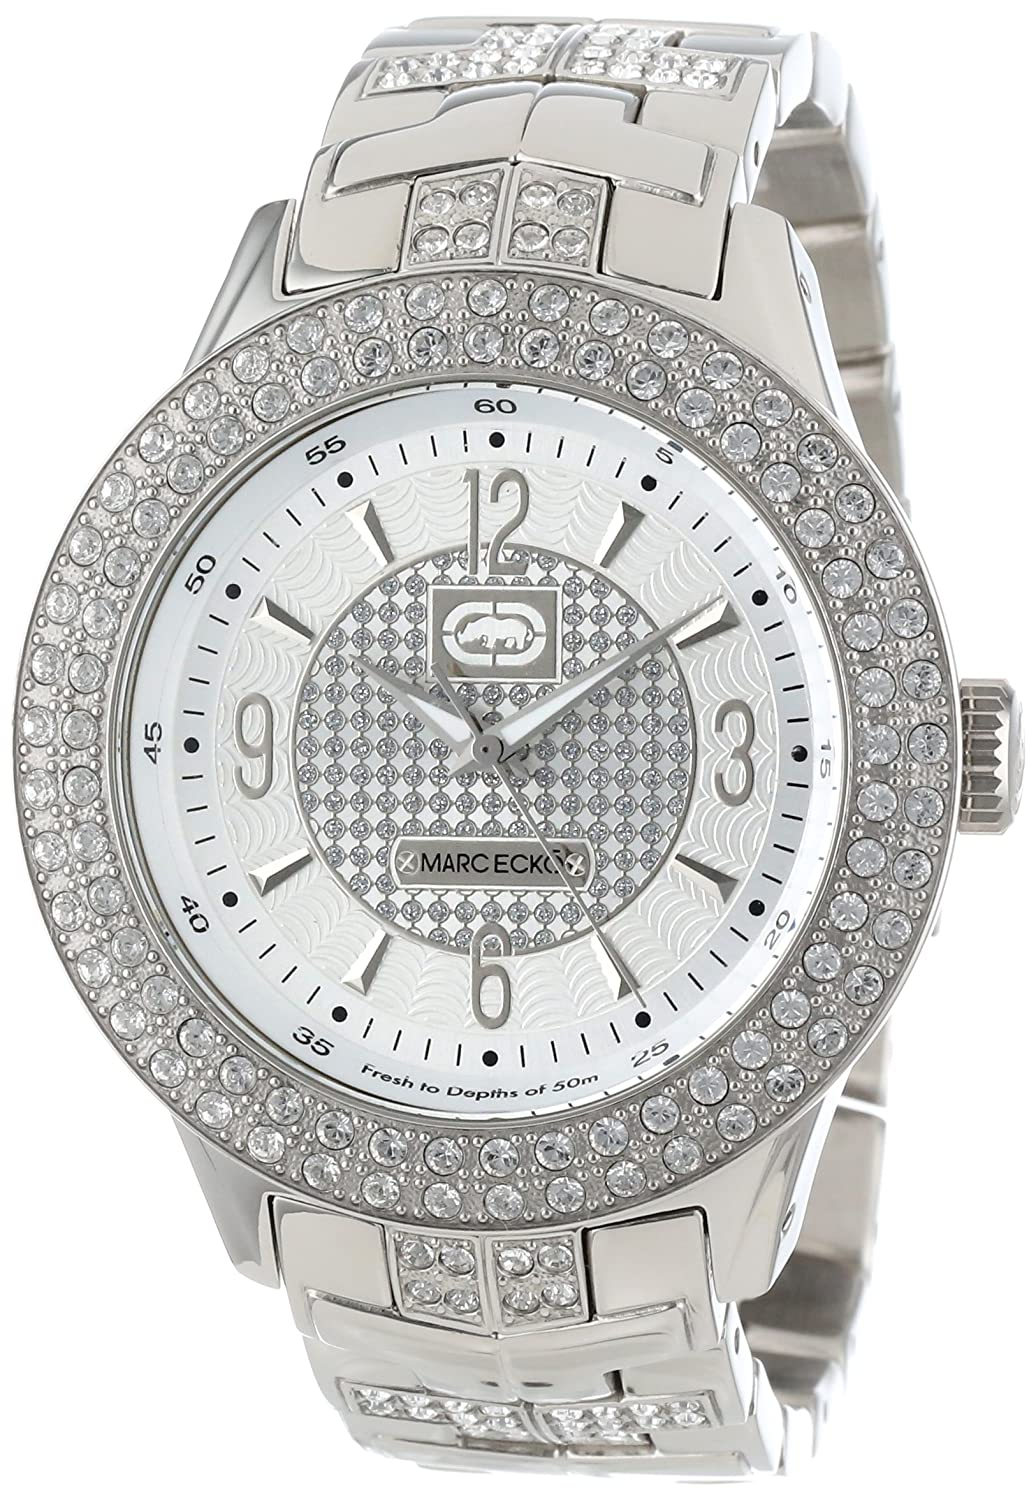 Amazon.com: Marc Ecko Mens Iced Quartz Stainless Steel Dress Watch, Color:Silver-Toned (Model: E16533G1): Marc Ecko: Watches